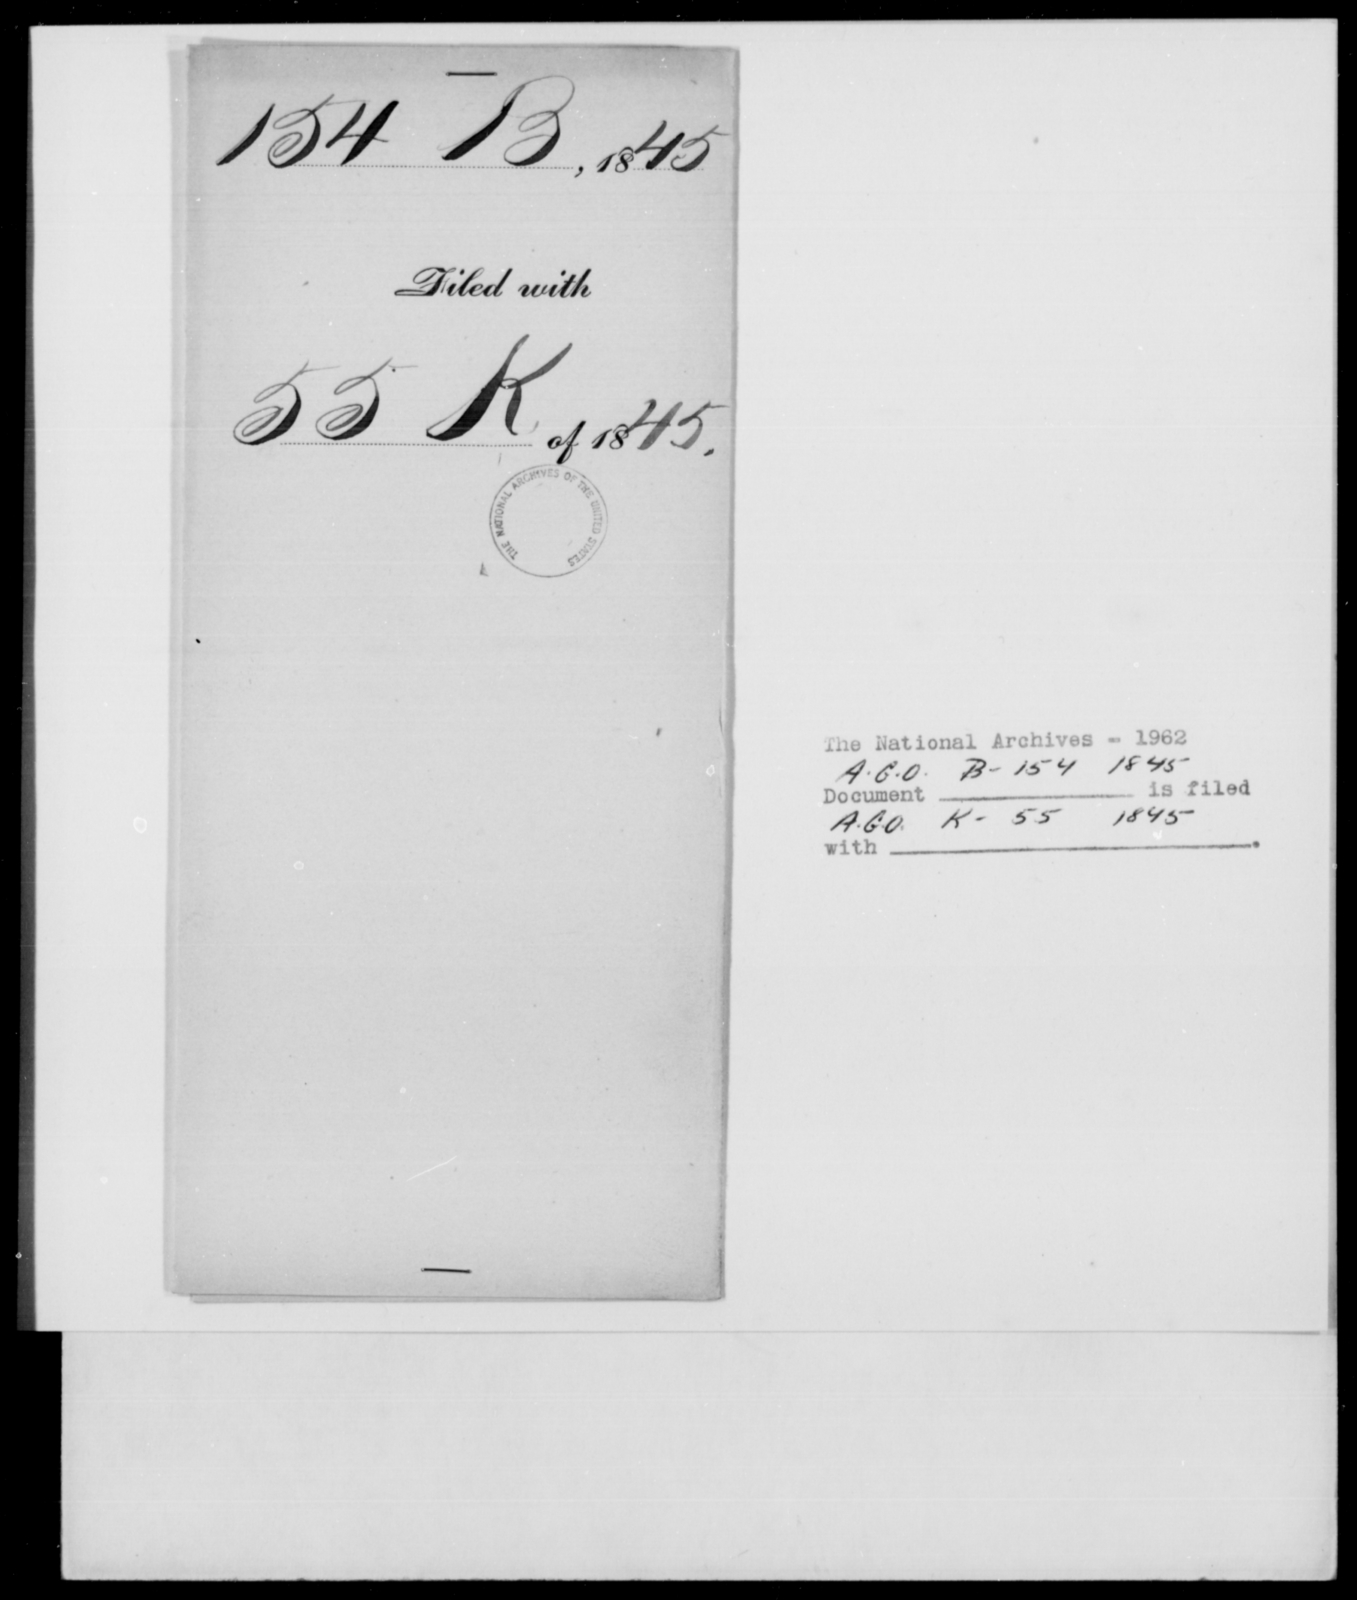 [Blank], J - State: New York - Year: 1845 - File Number: B154